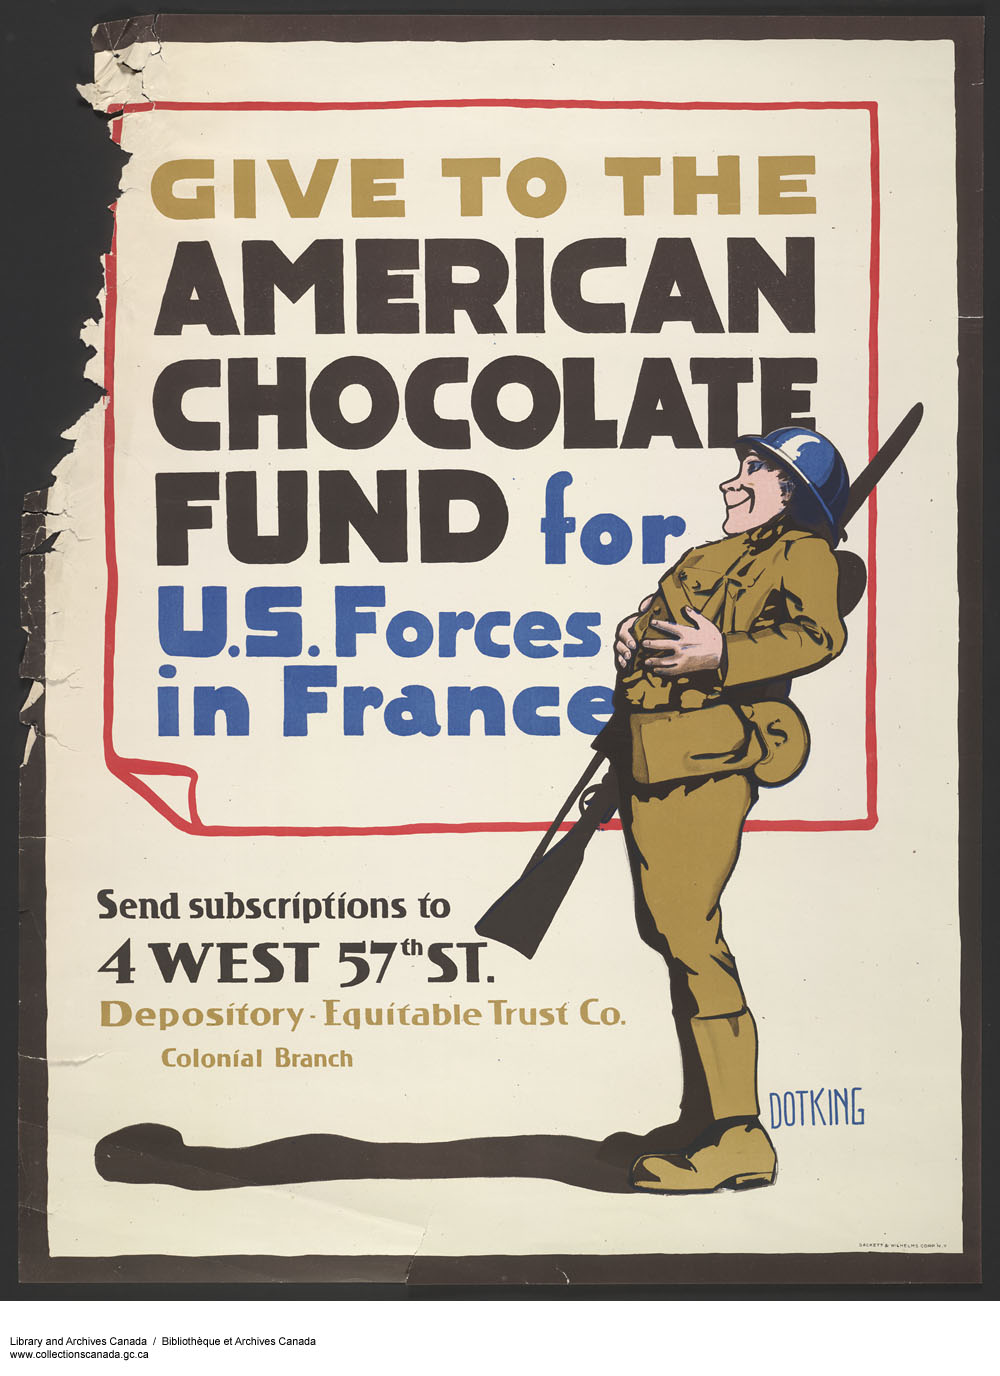 Give to The American Chocolate Fund for U.S. Forces in France. (item 1)